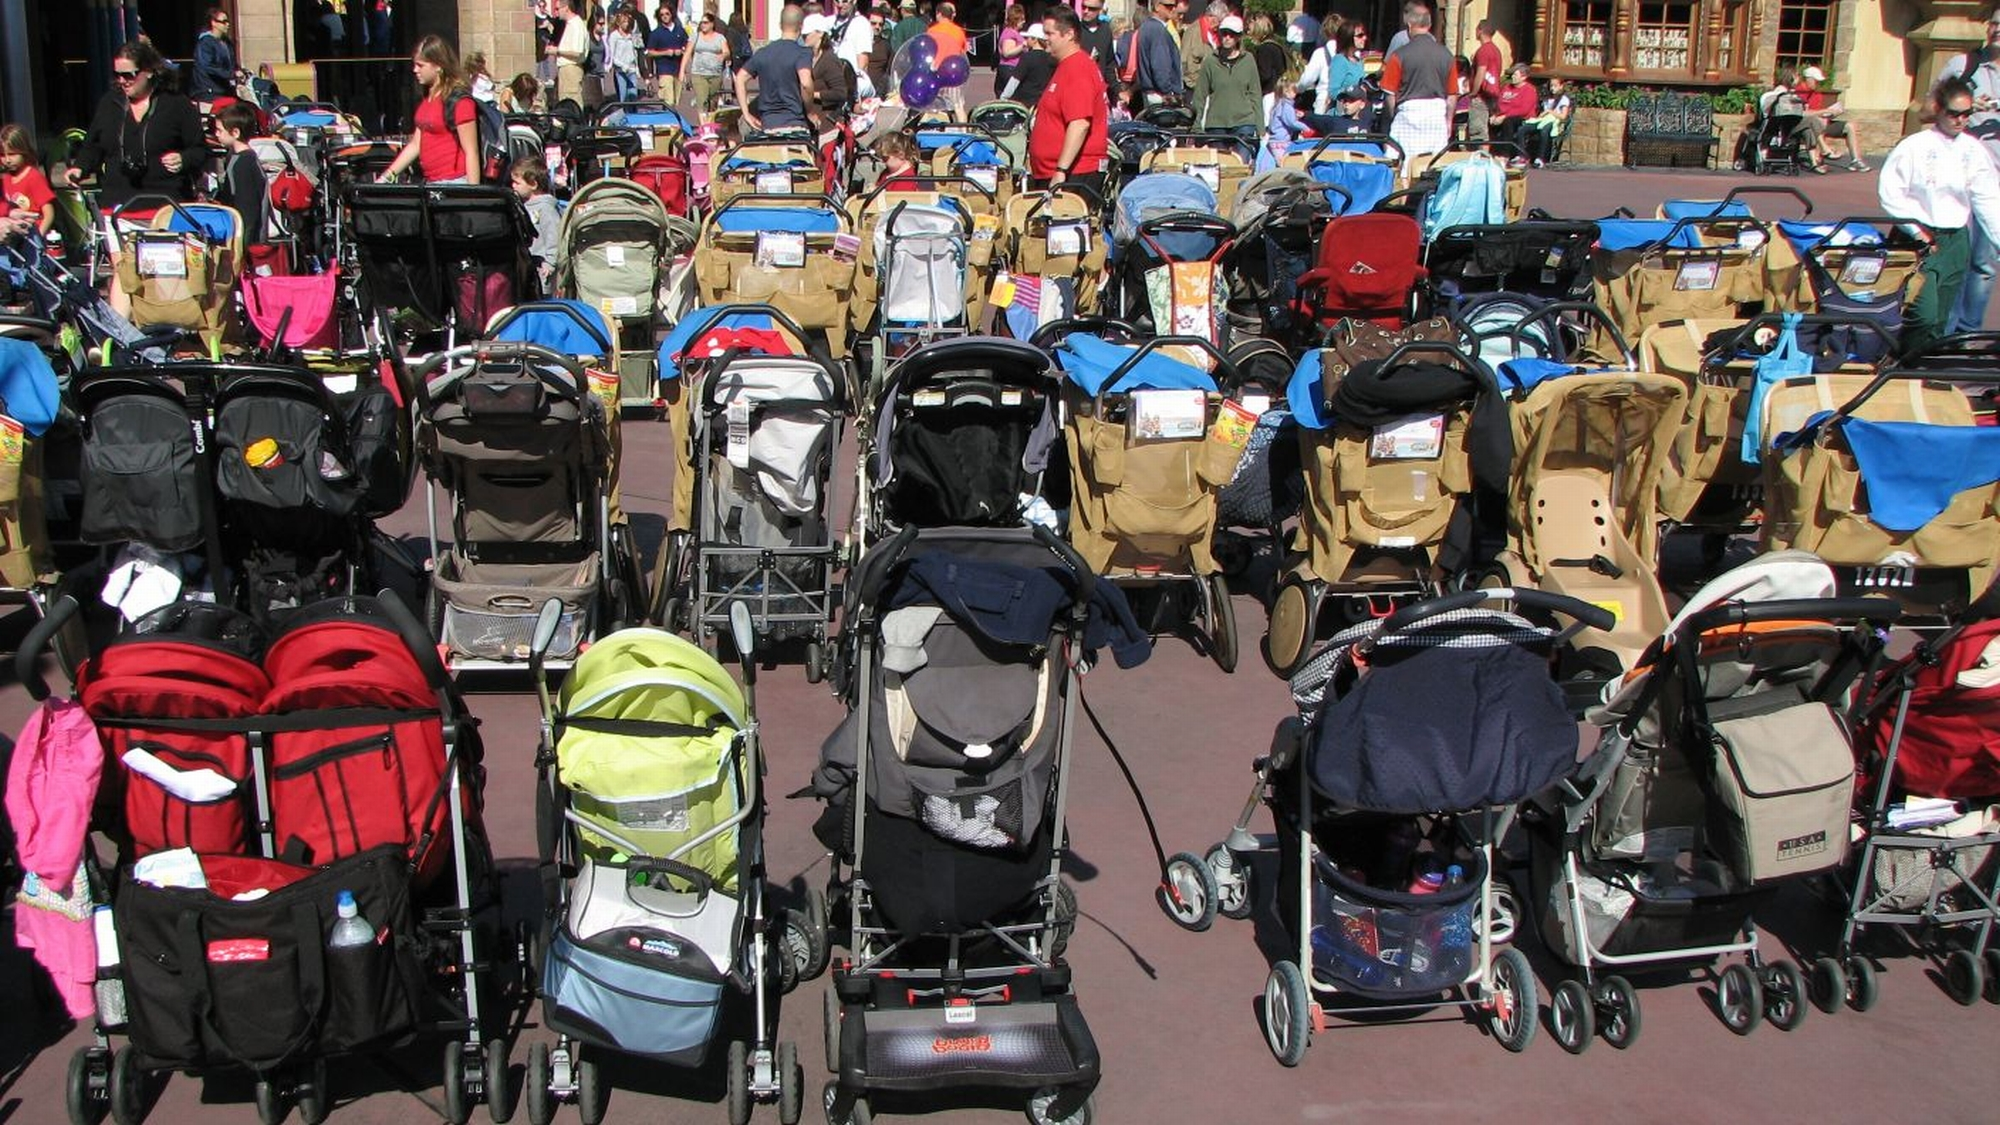 Magic Kingdom - Stroller-land photo